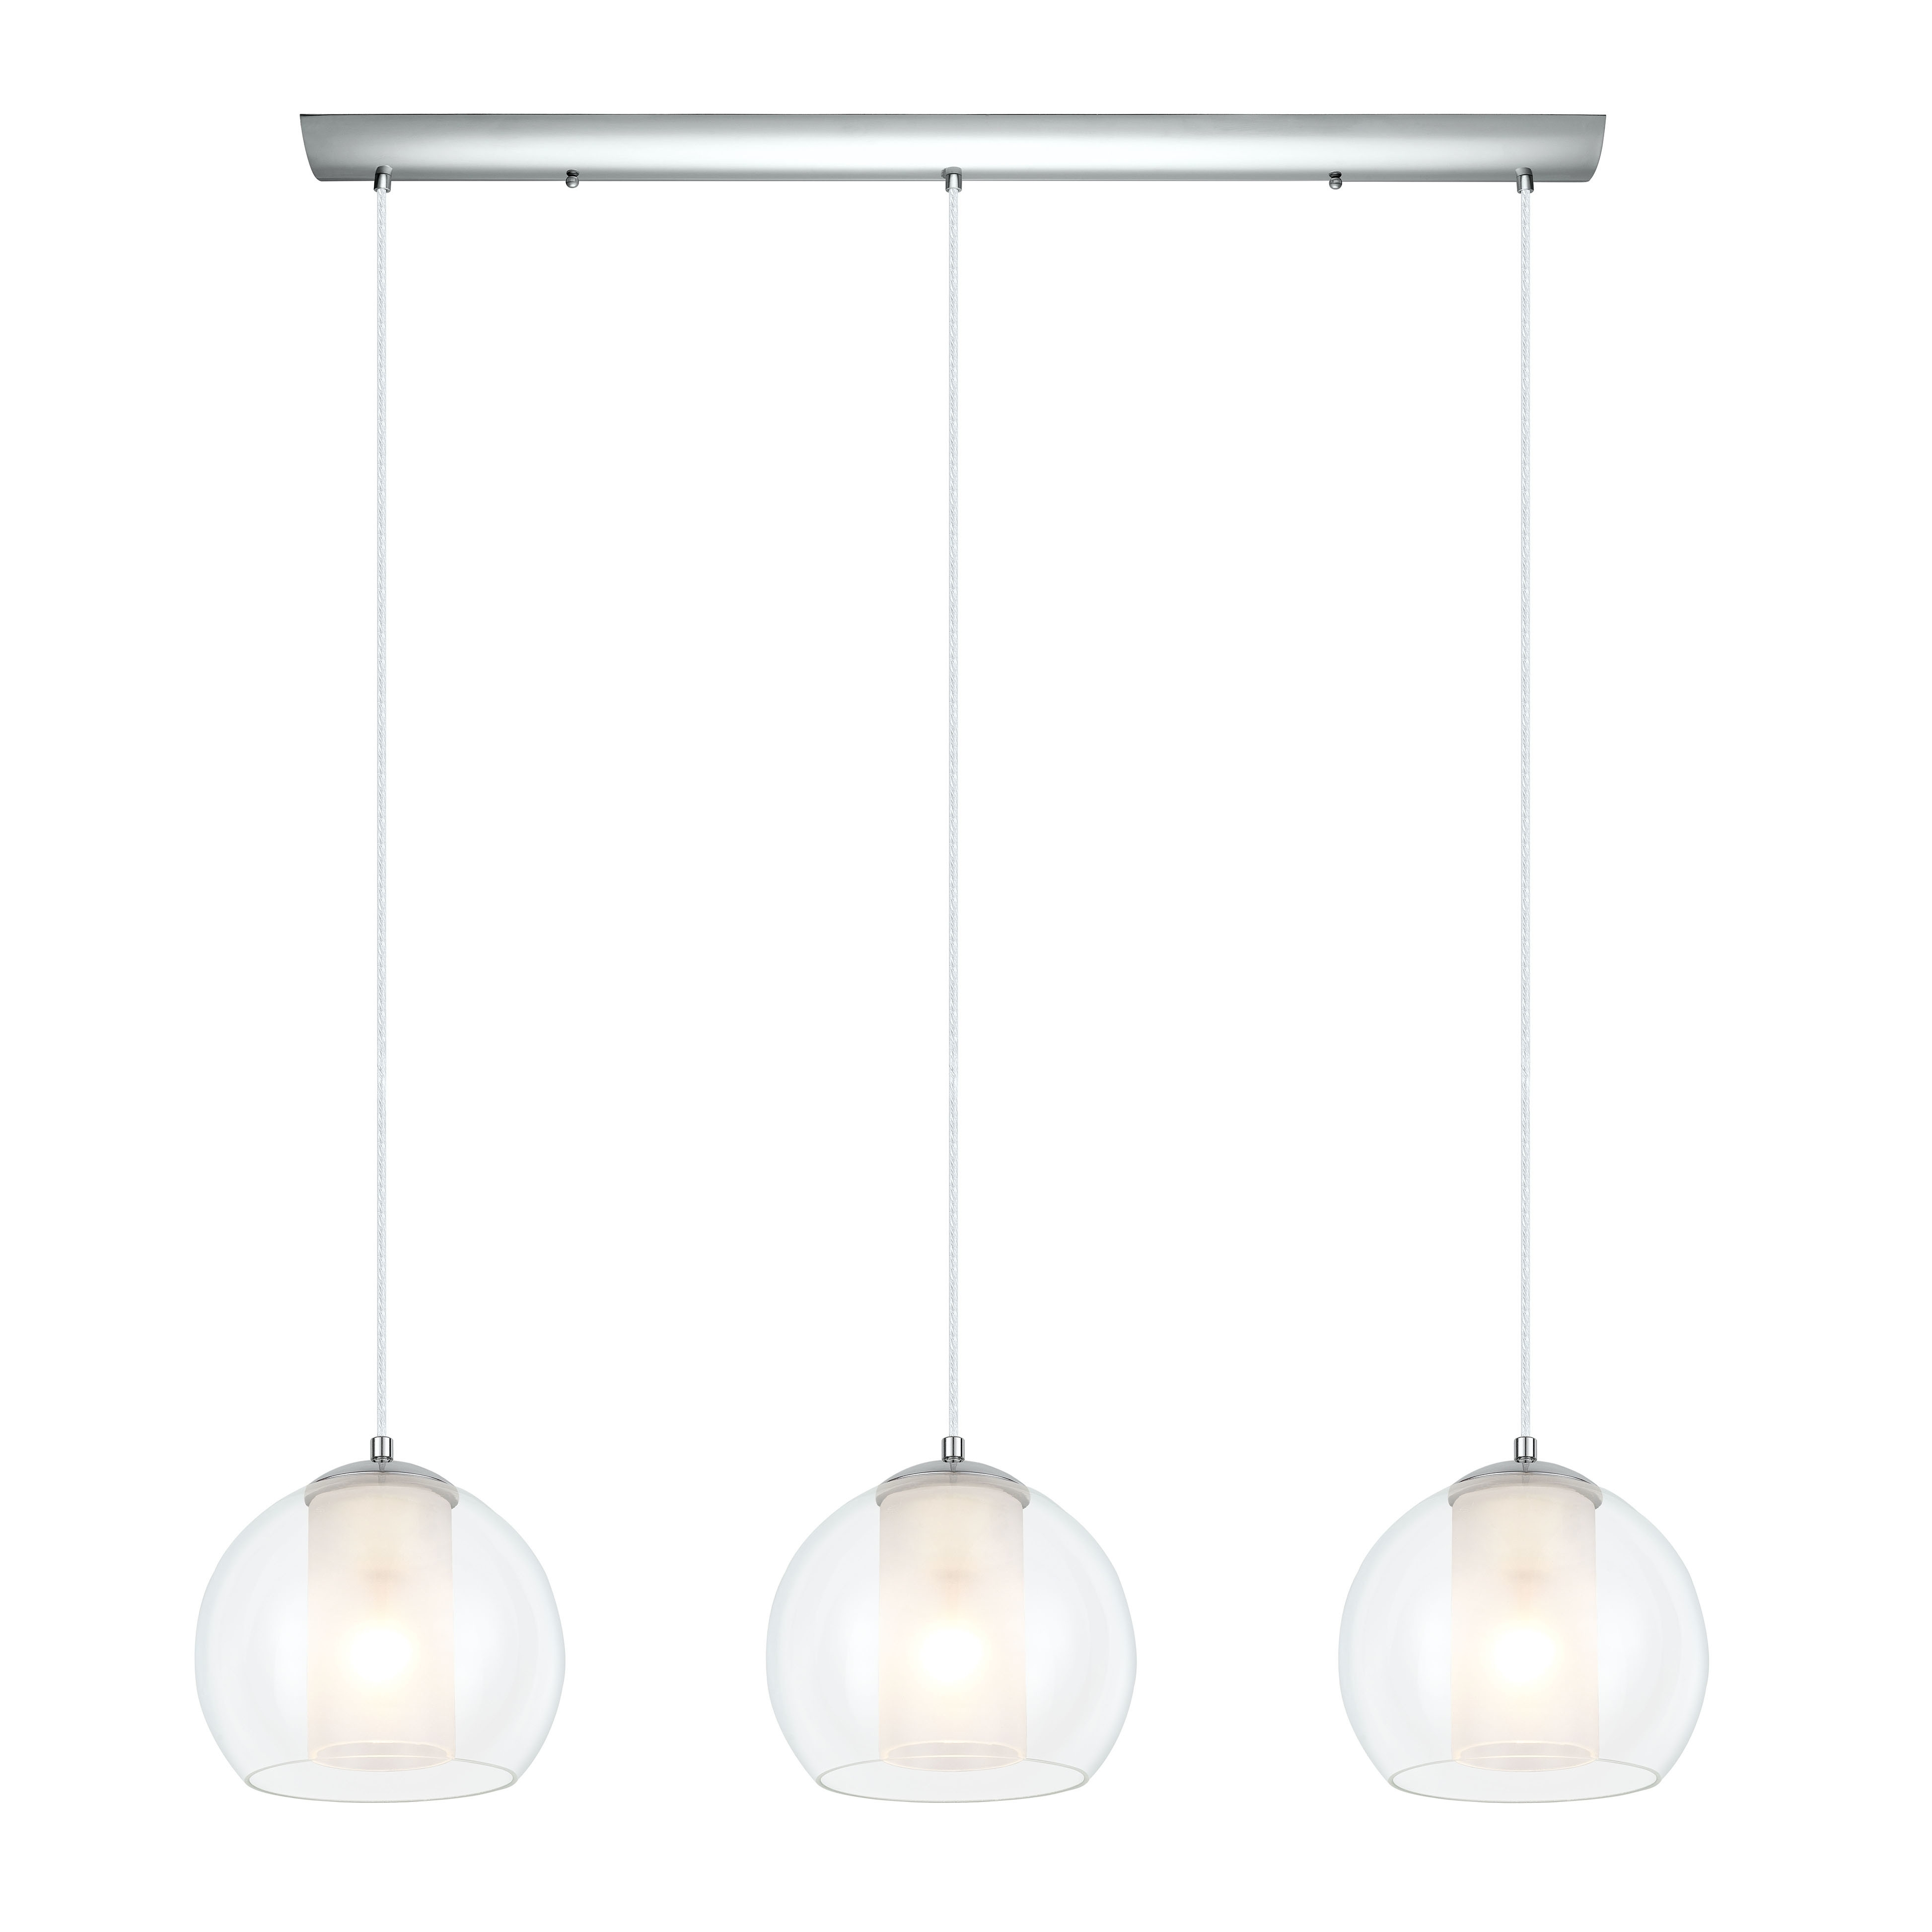 Outdoor Wall Lighting Wayfair 1 Light Lantern ~ Loversiq Inside Contemporary Outdoor String Lights At Wayfair (#13 of 15)